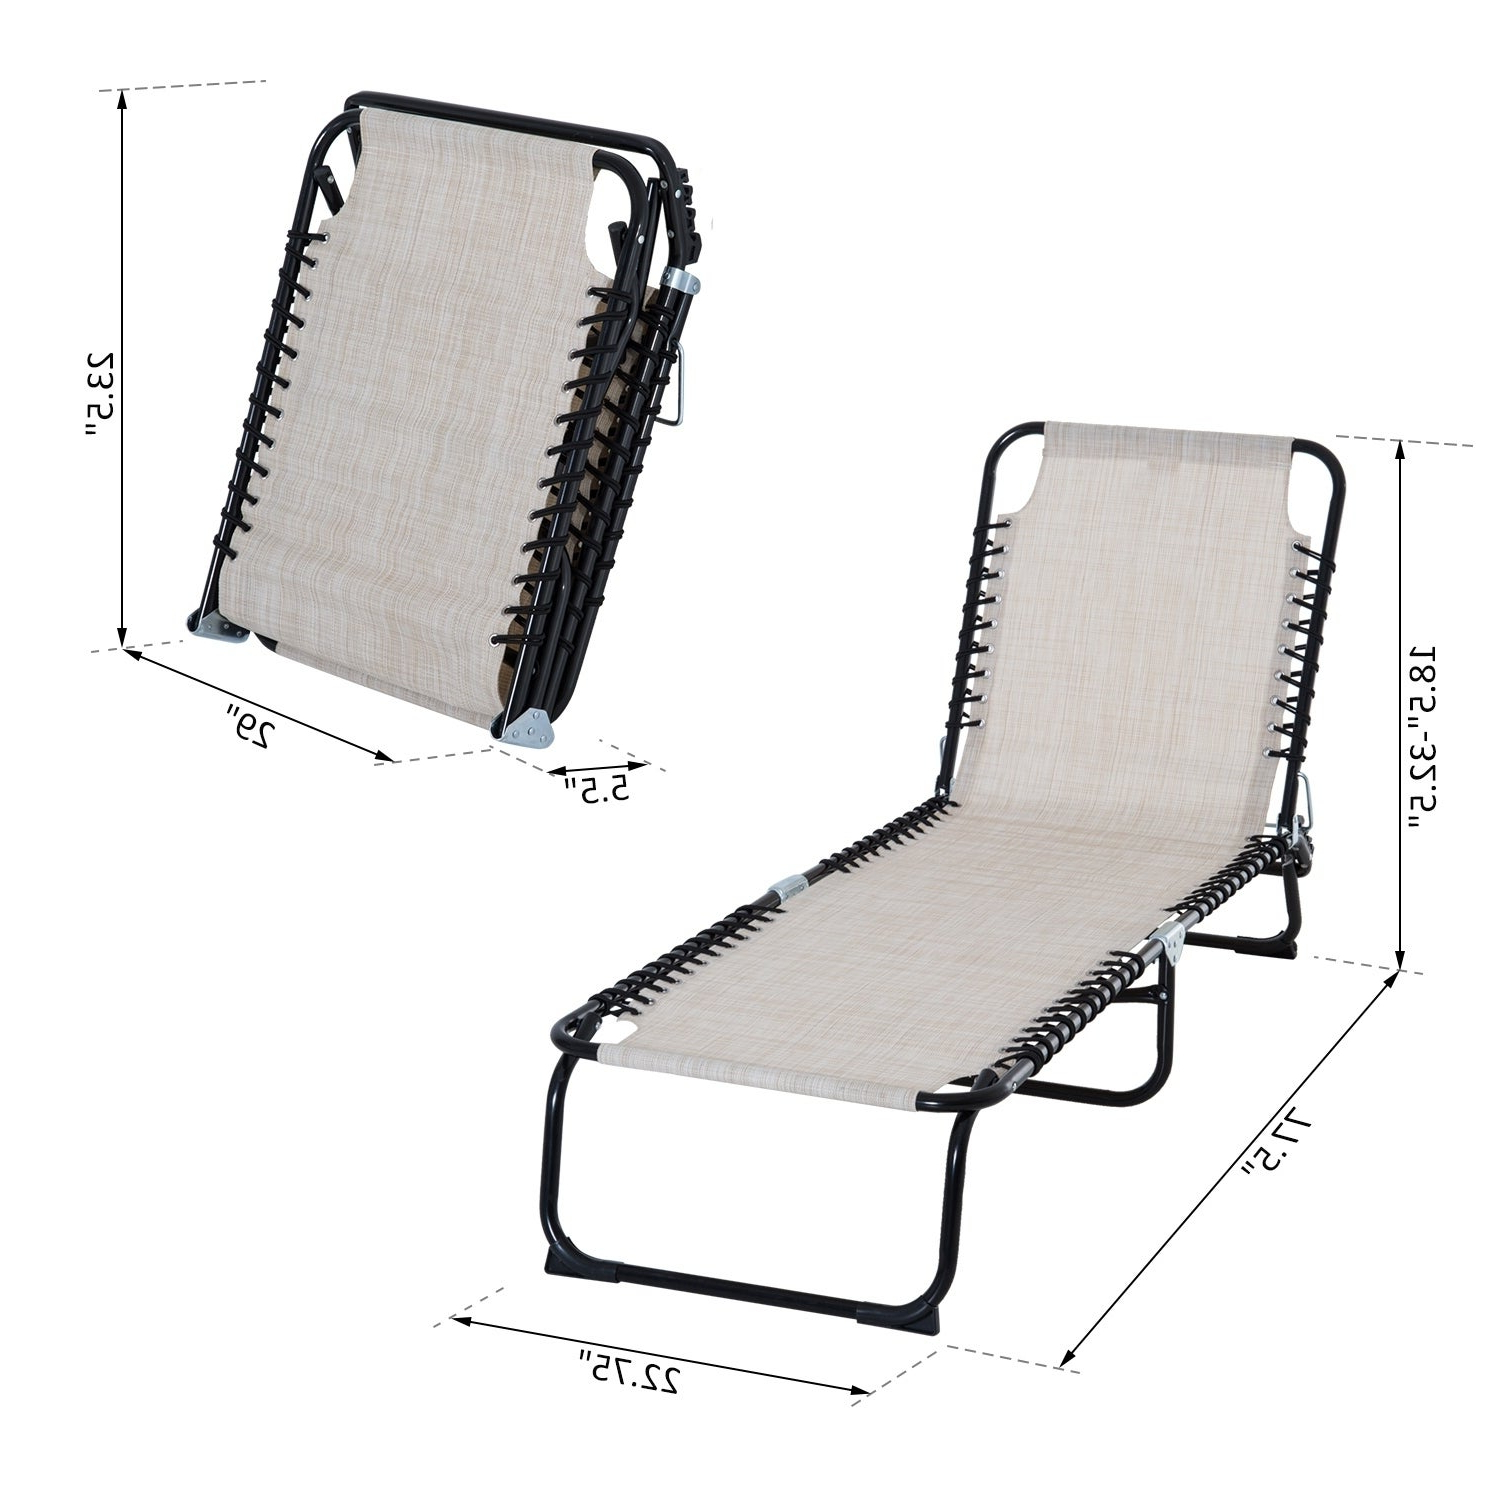 3 Position Portable Folding Reclining Beach Chaise Lounges Throughout Most Recent Outsunny 3 Position Portable Reclining Beach Chaise Lounge Folding Chair Outdoor Patio – Cream White (Gallery 8 of 25)